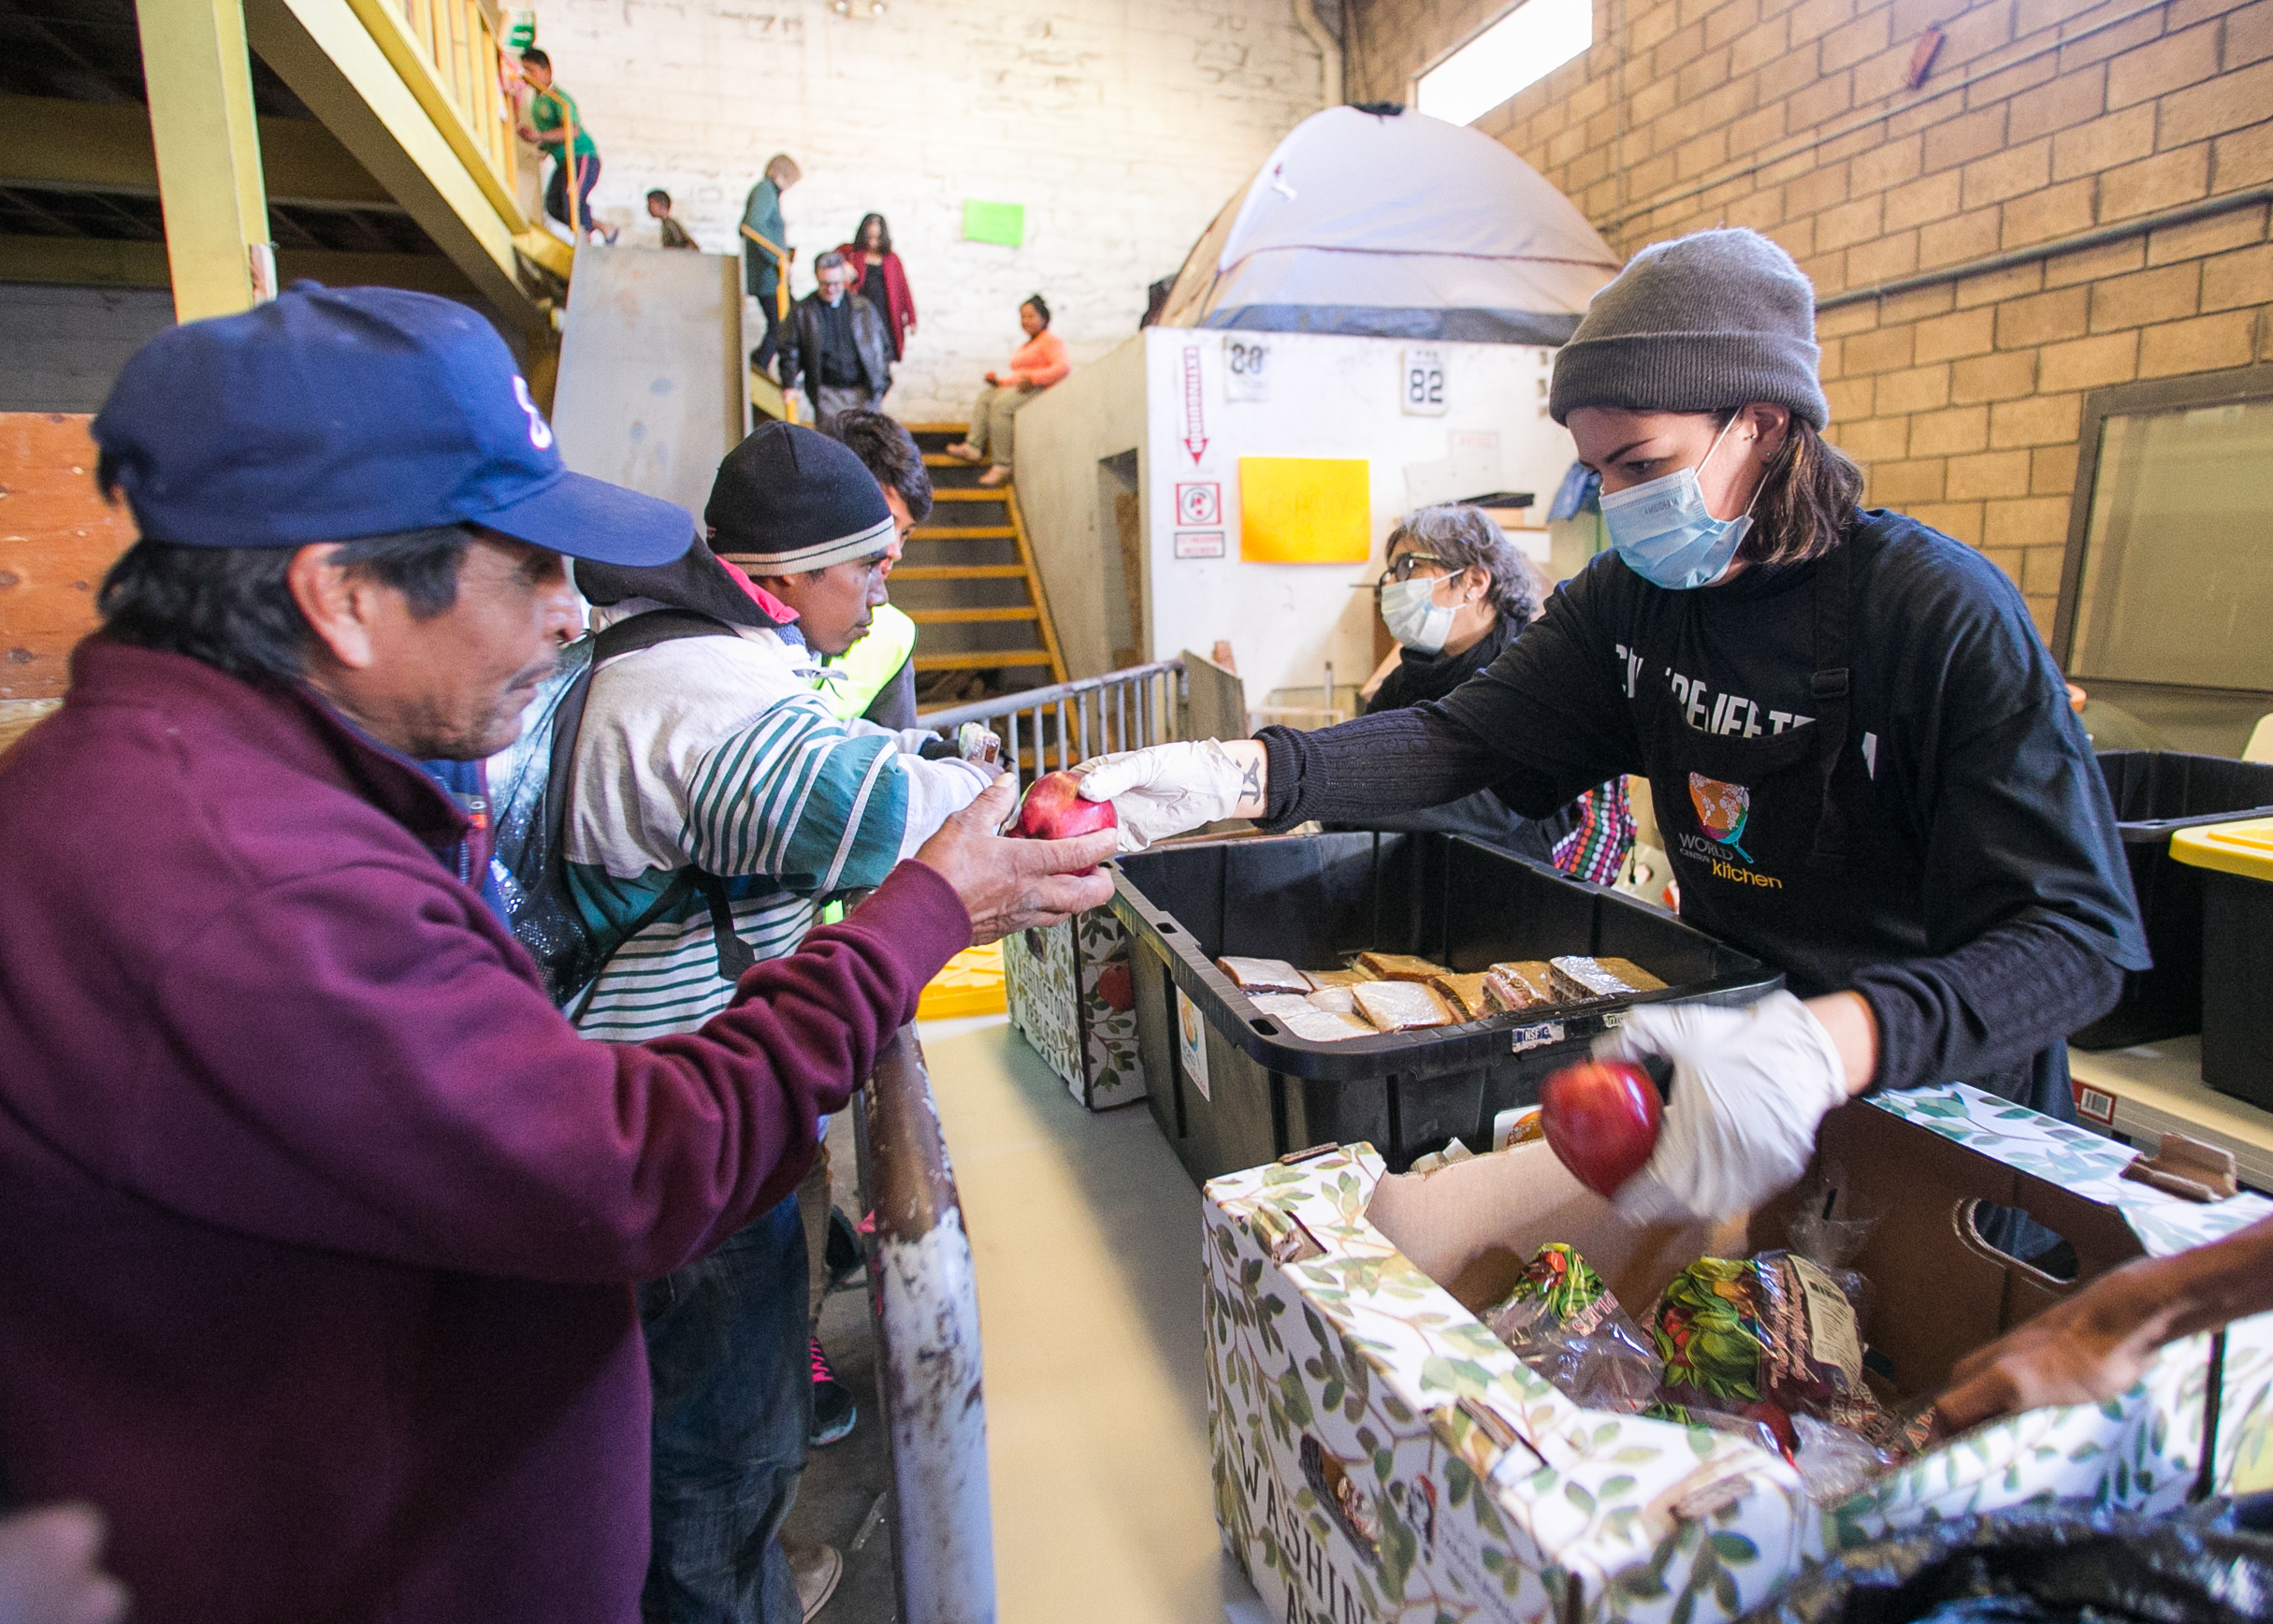 A World Central Kitchen volunteer serves refugees in the El Chinchetta compound located in Central Tijuana.